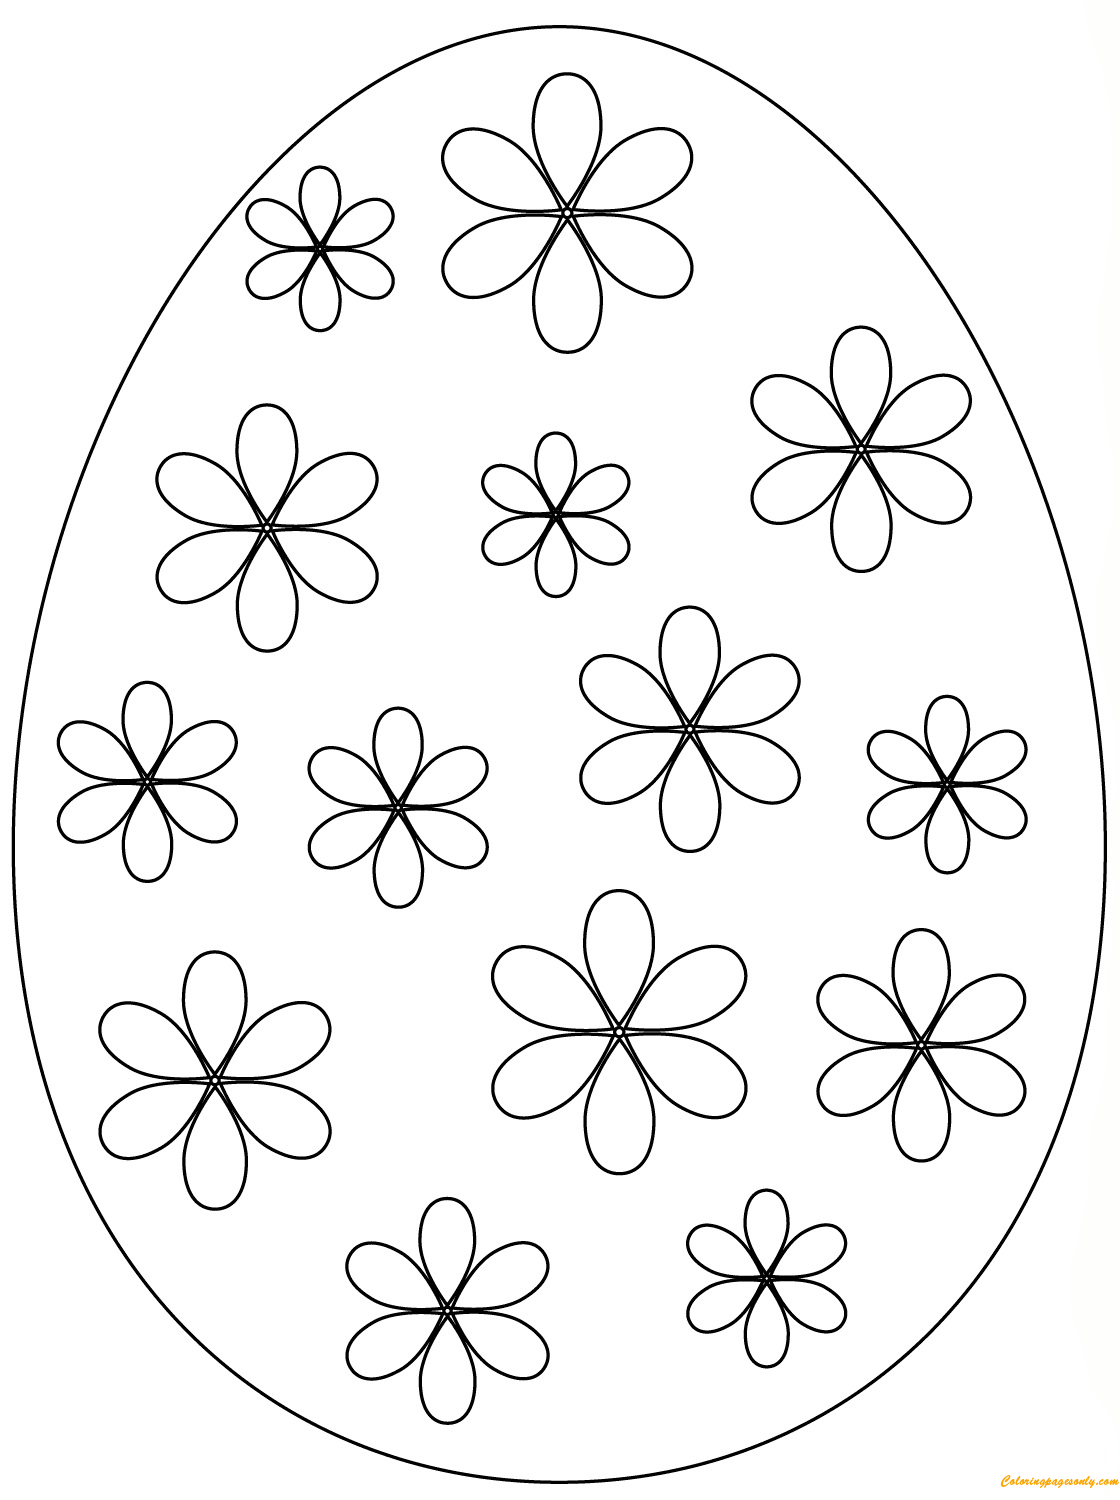 egg for colouring easter egg coloring pages colouring egg for